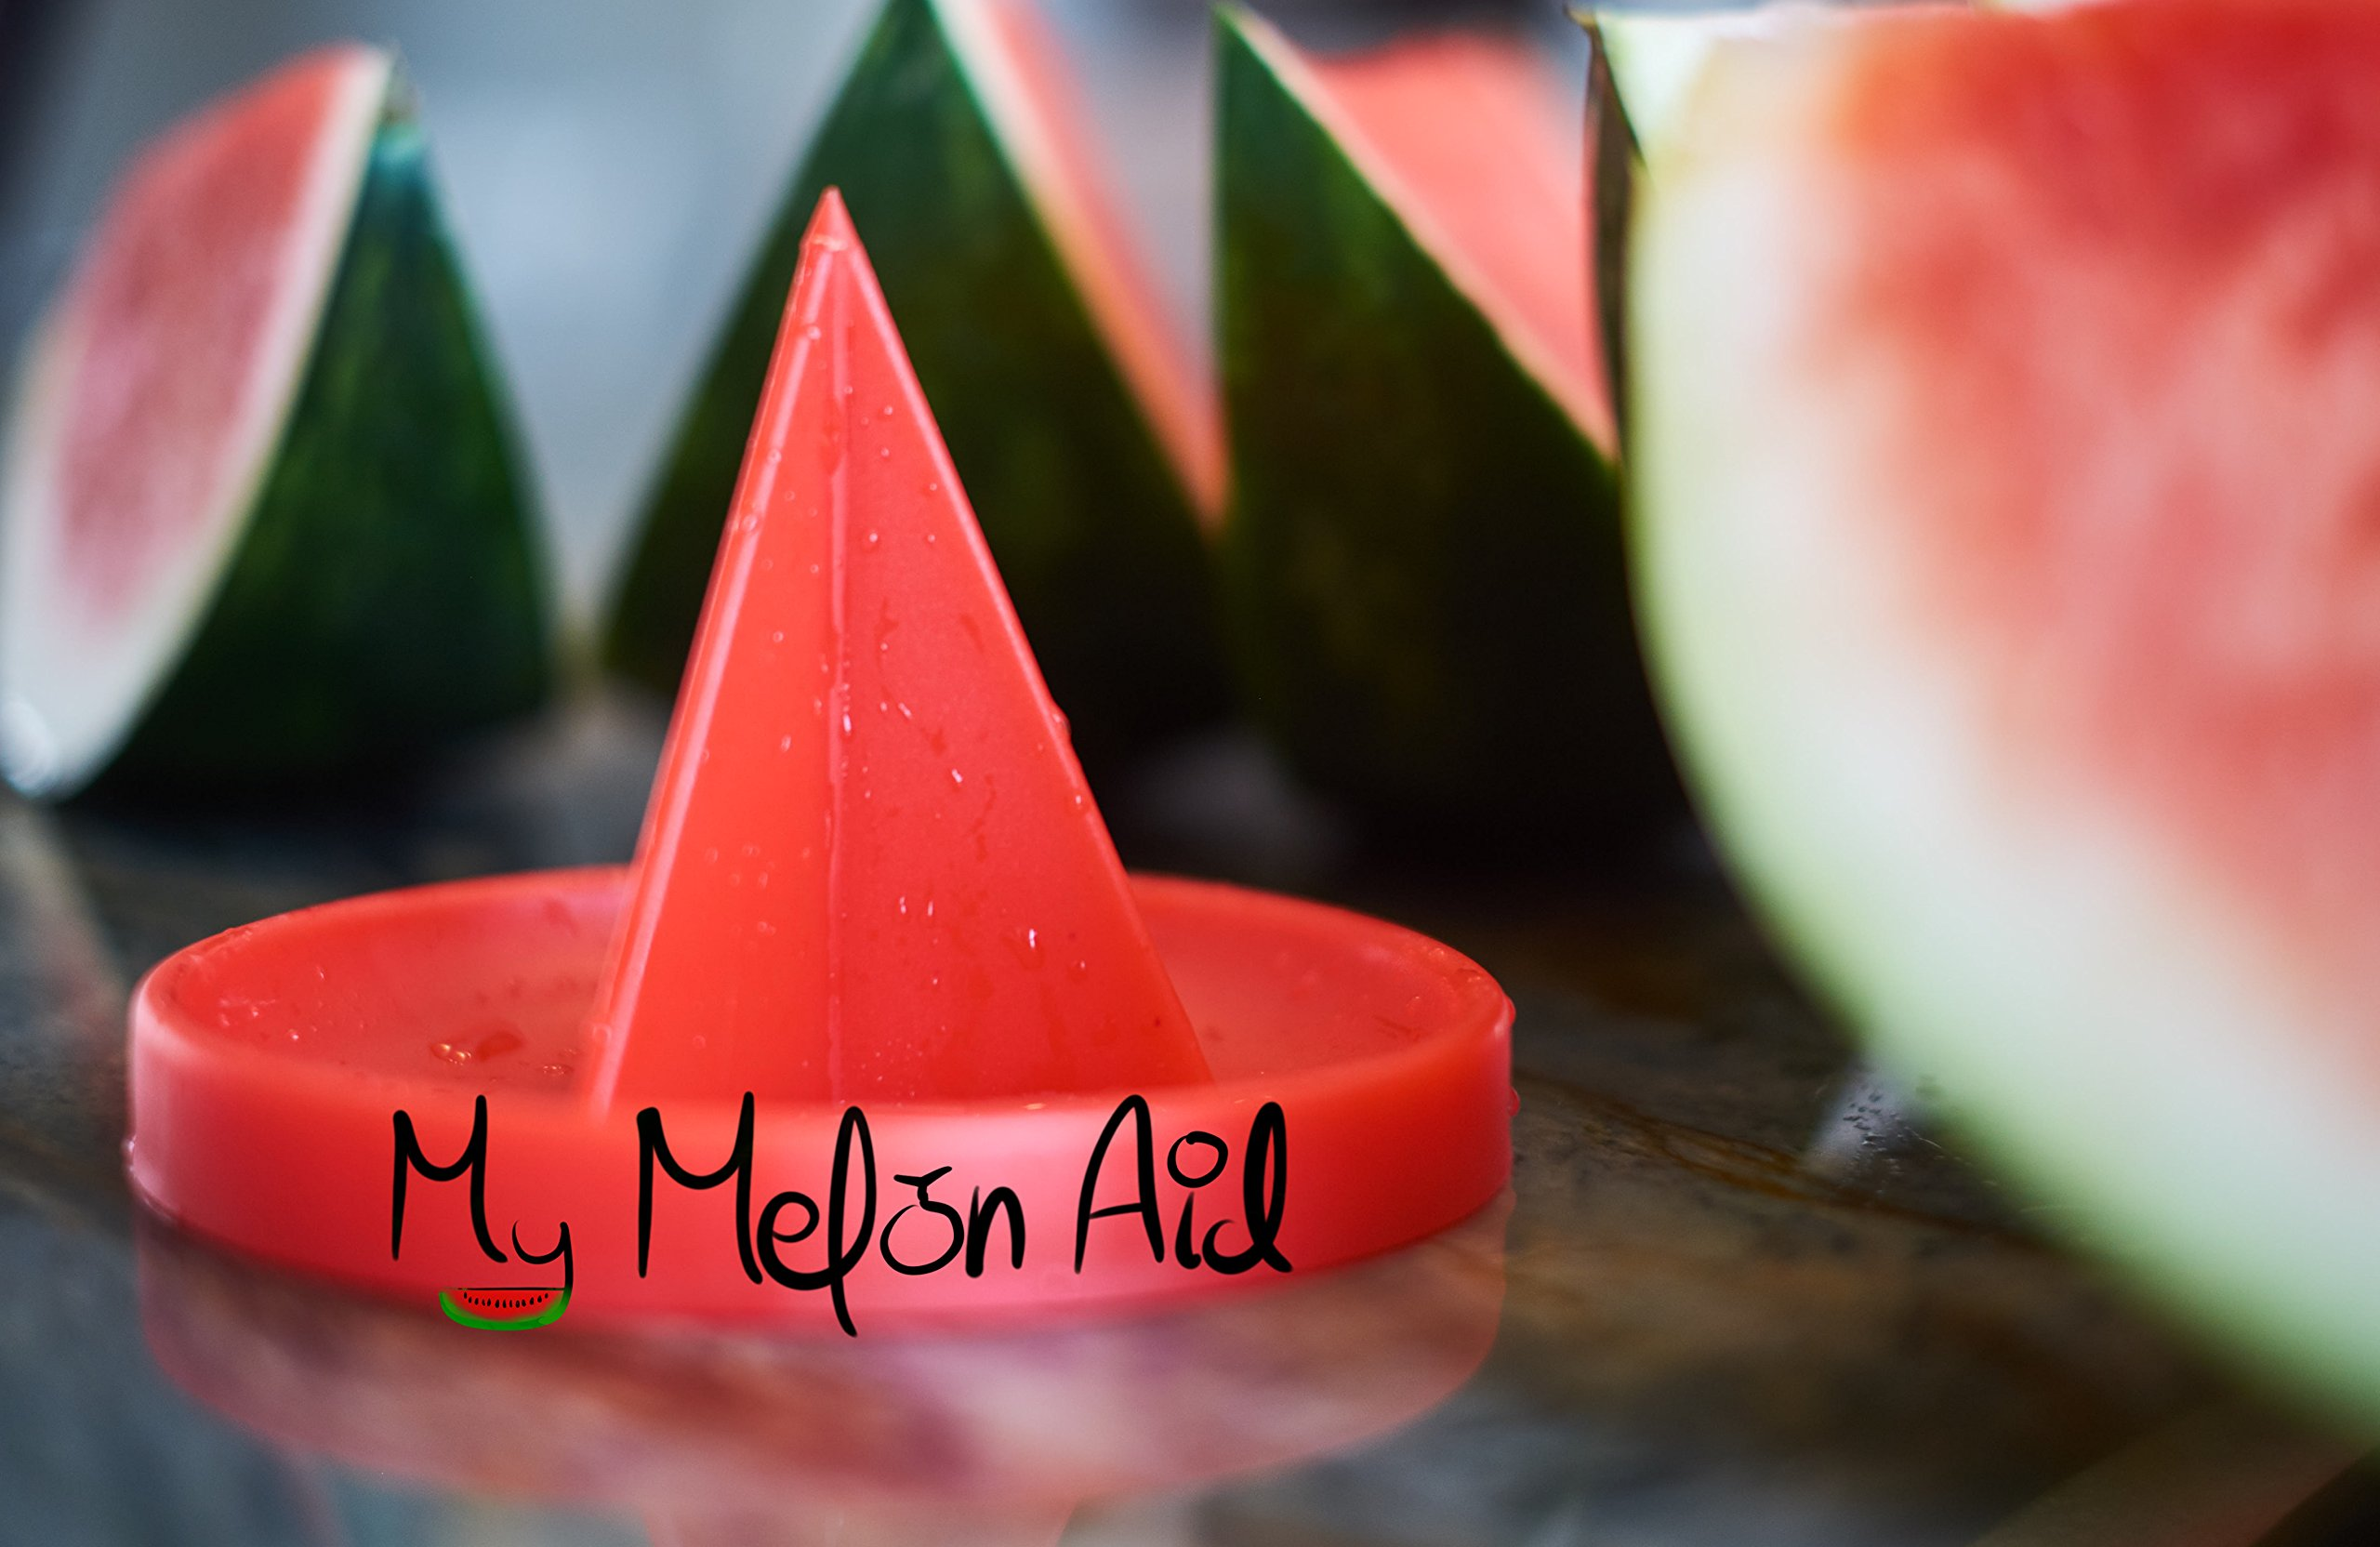 Patented Watermelon Slicer Stand - My MelonAid Cutter - Push, Cut & Eat Healthy - Safe, No Mess and No Stress - Tool for All types of Melons by My MelonAid (Image #1)